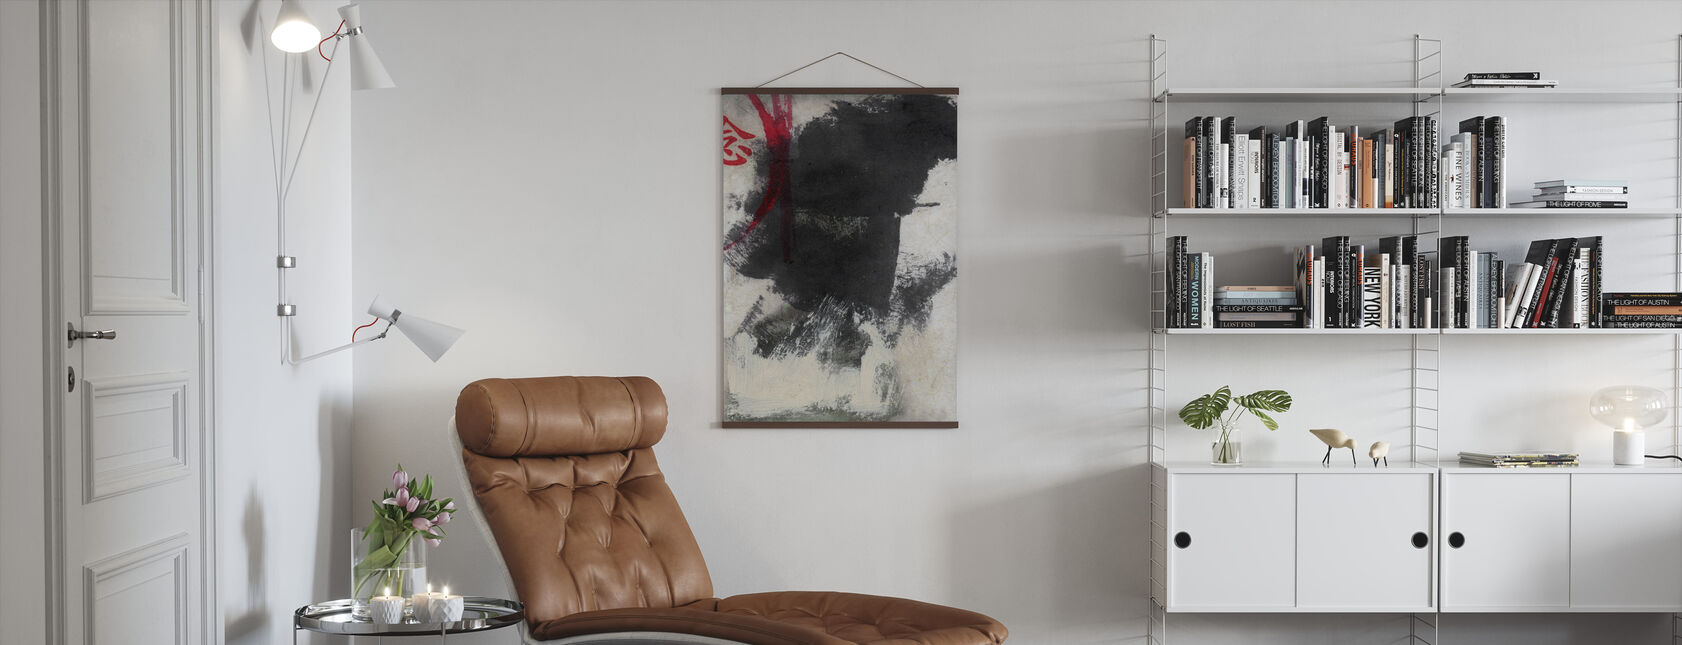 Chinese Character - Thought - Poster - Living Room